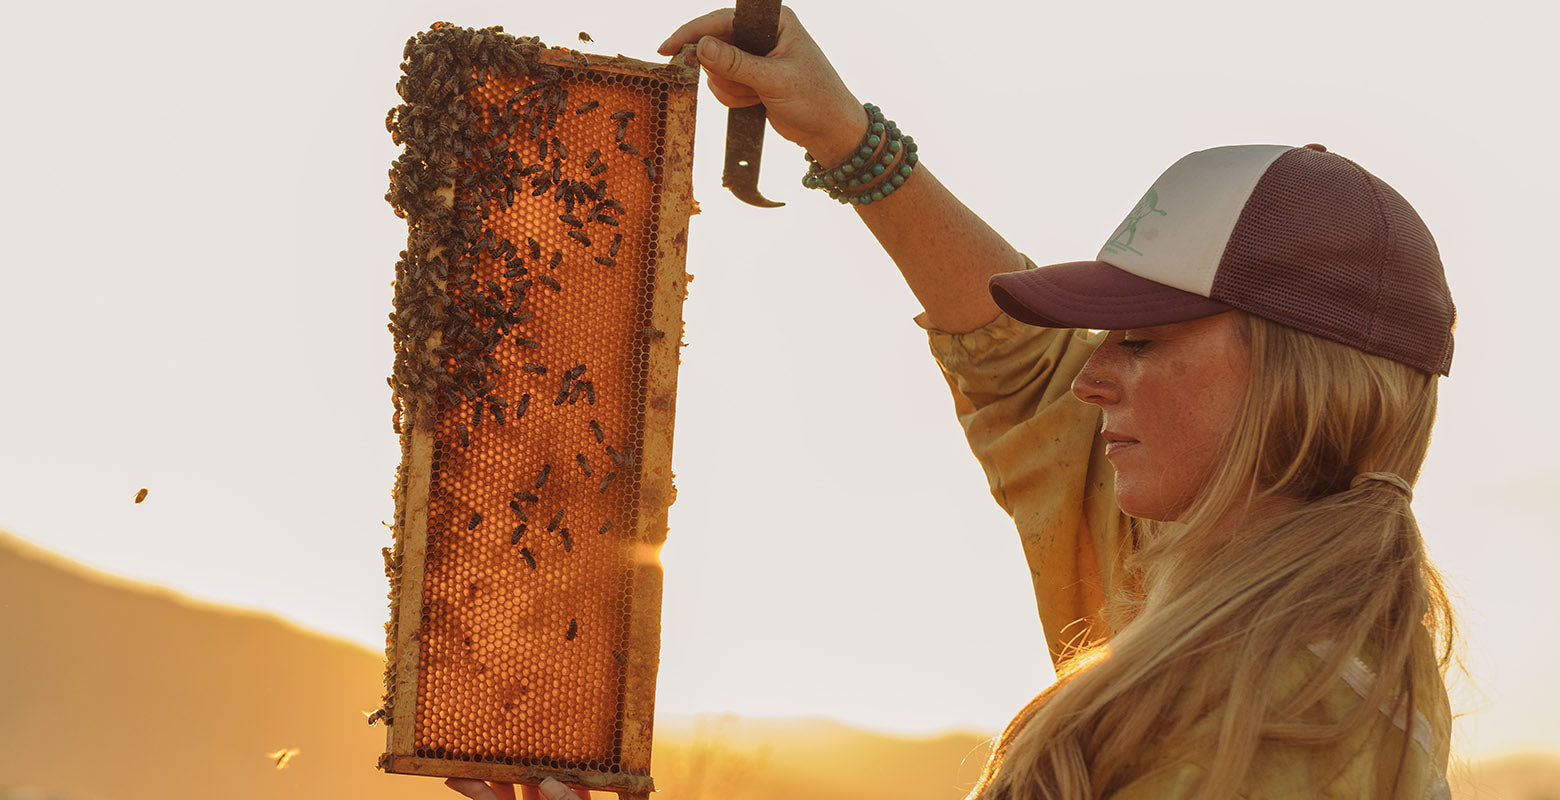 Bees work together to make honey